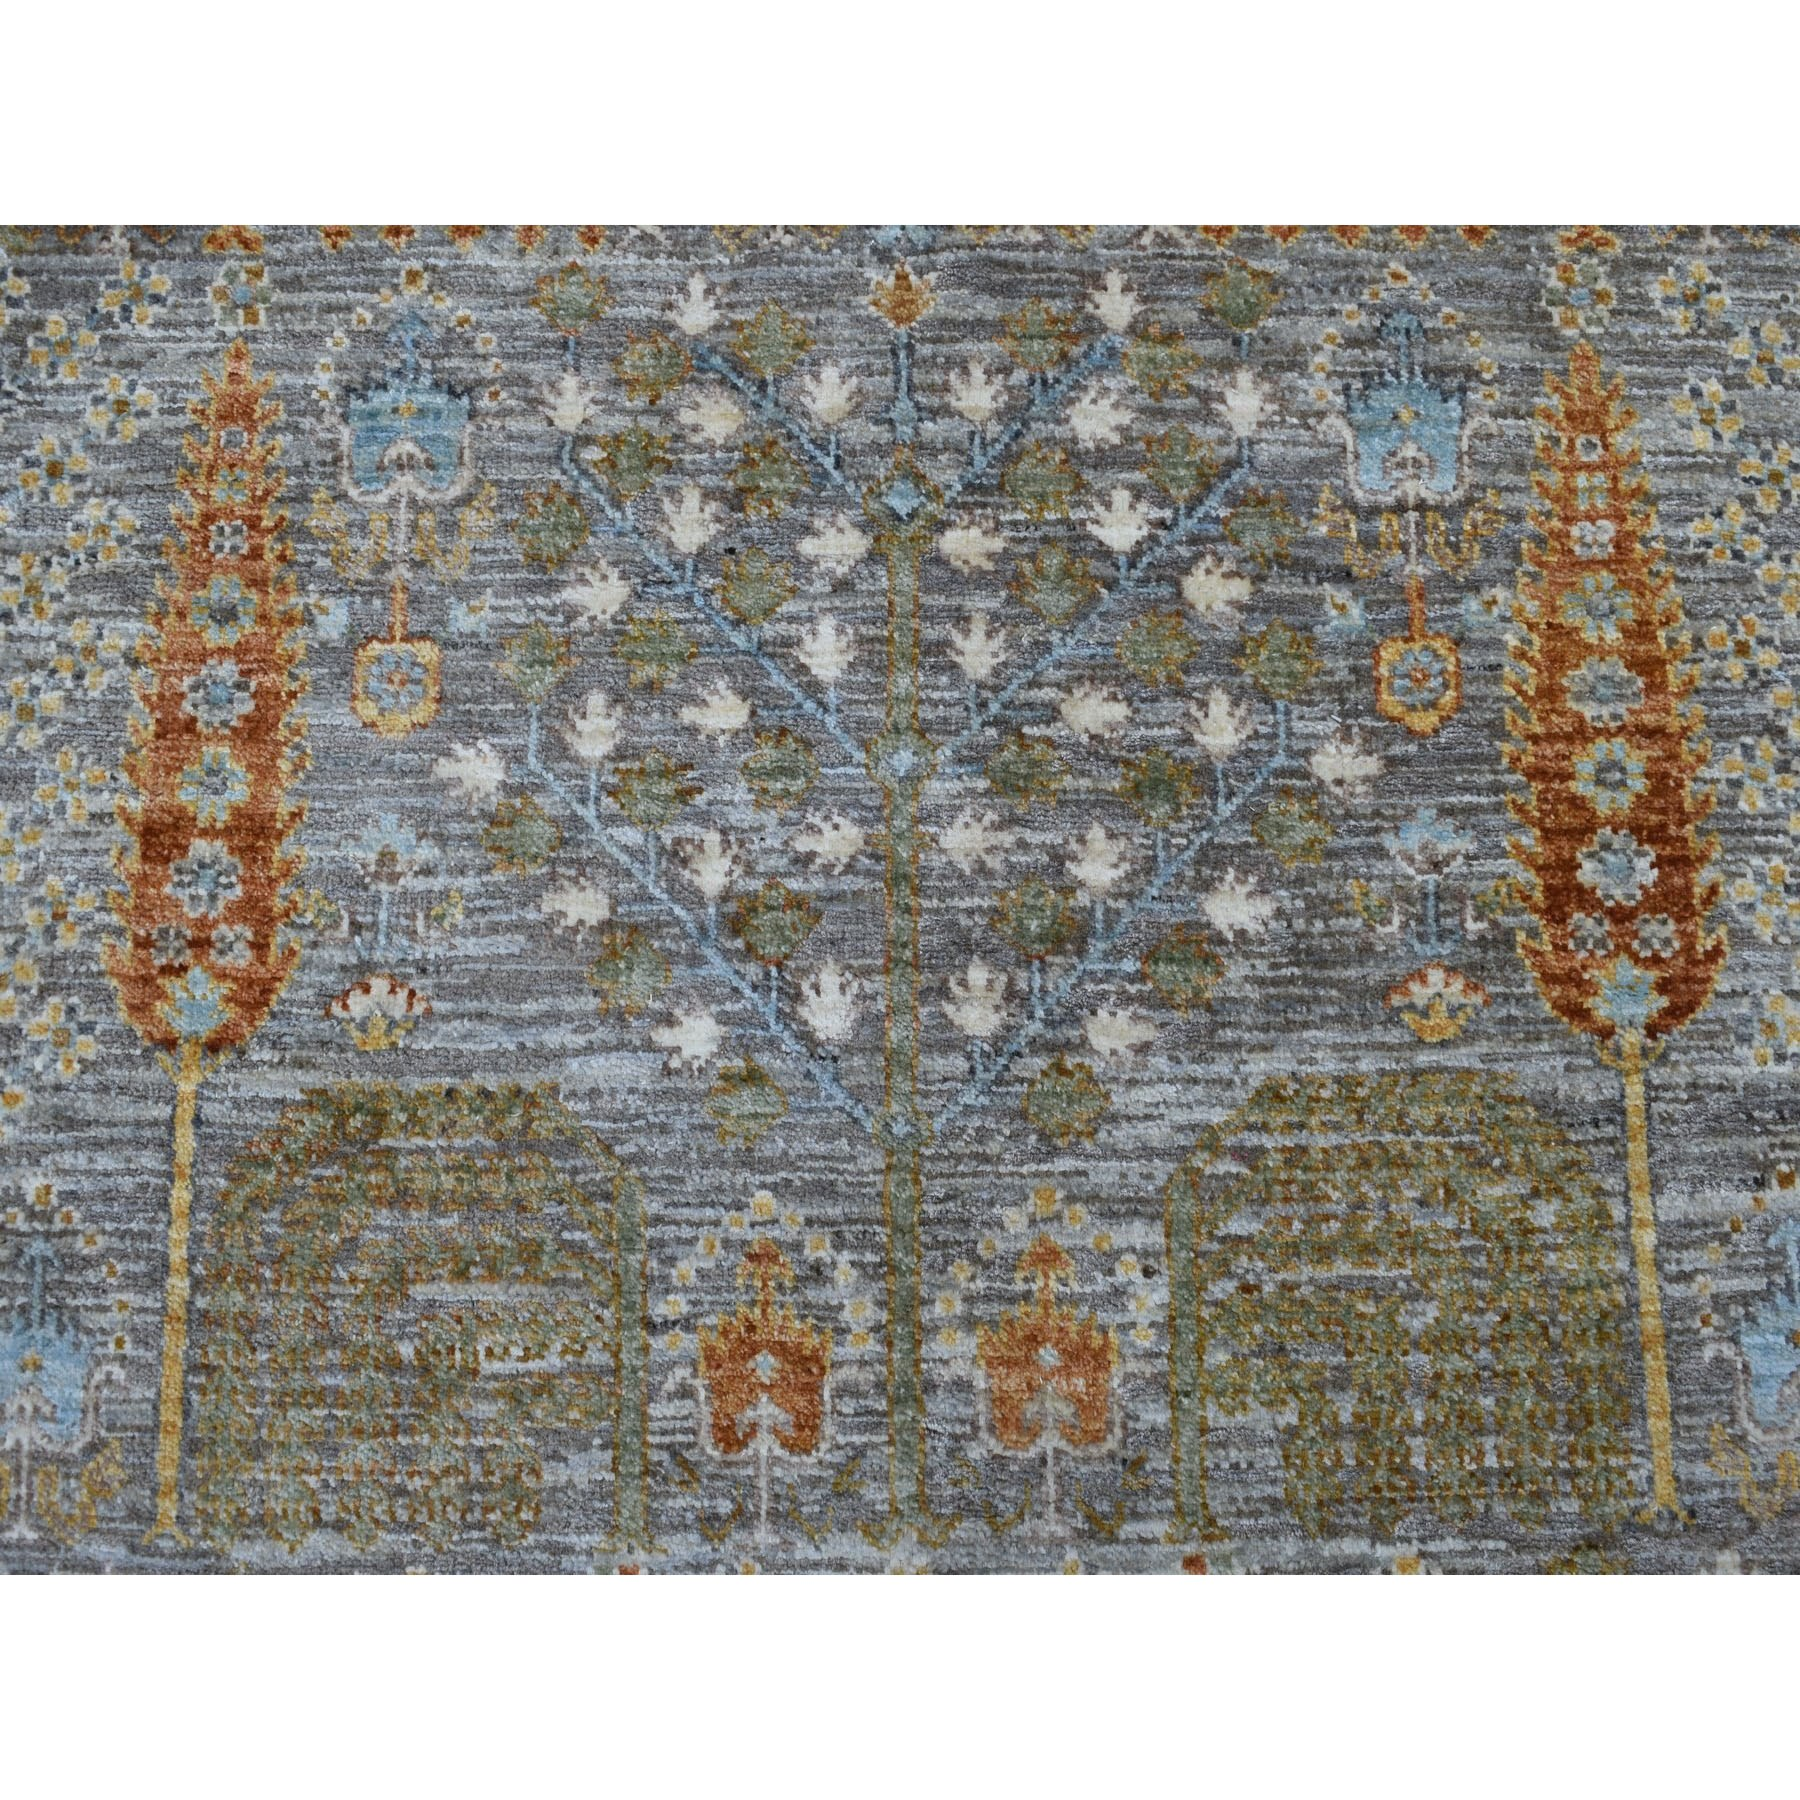 8'x10' Gray Willow and Cypress Tree Design Natural Wool Hand Knotted Oriental Rug